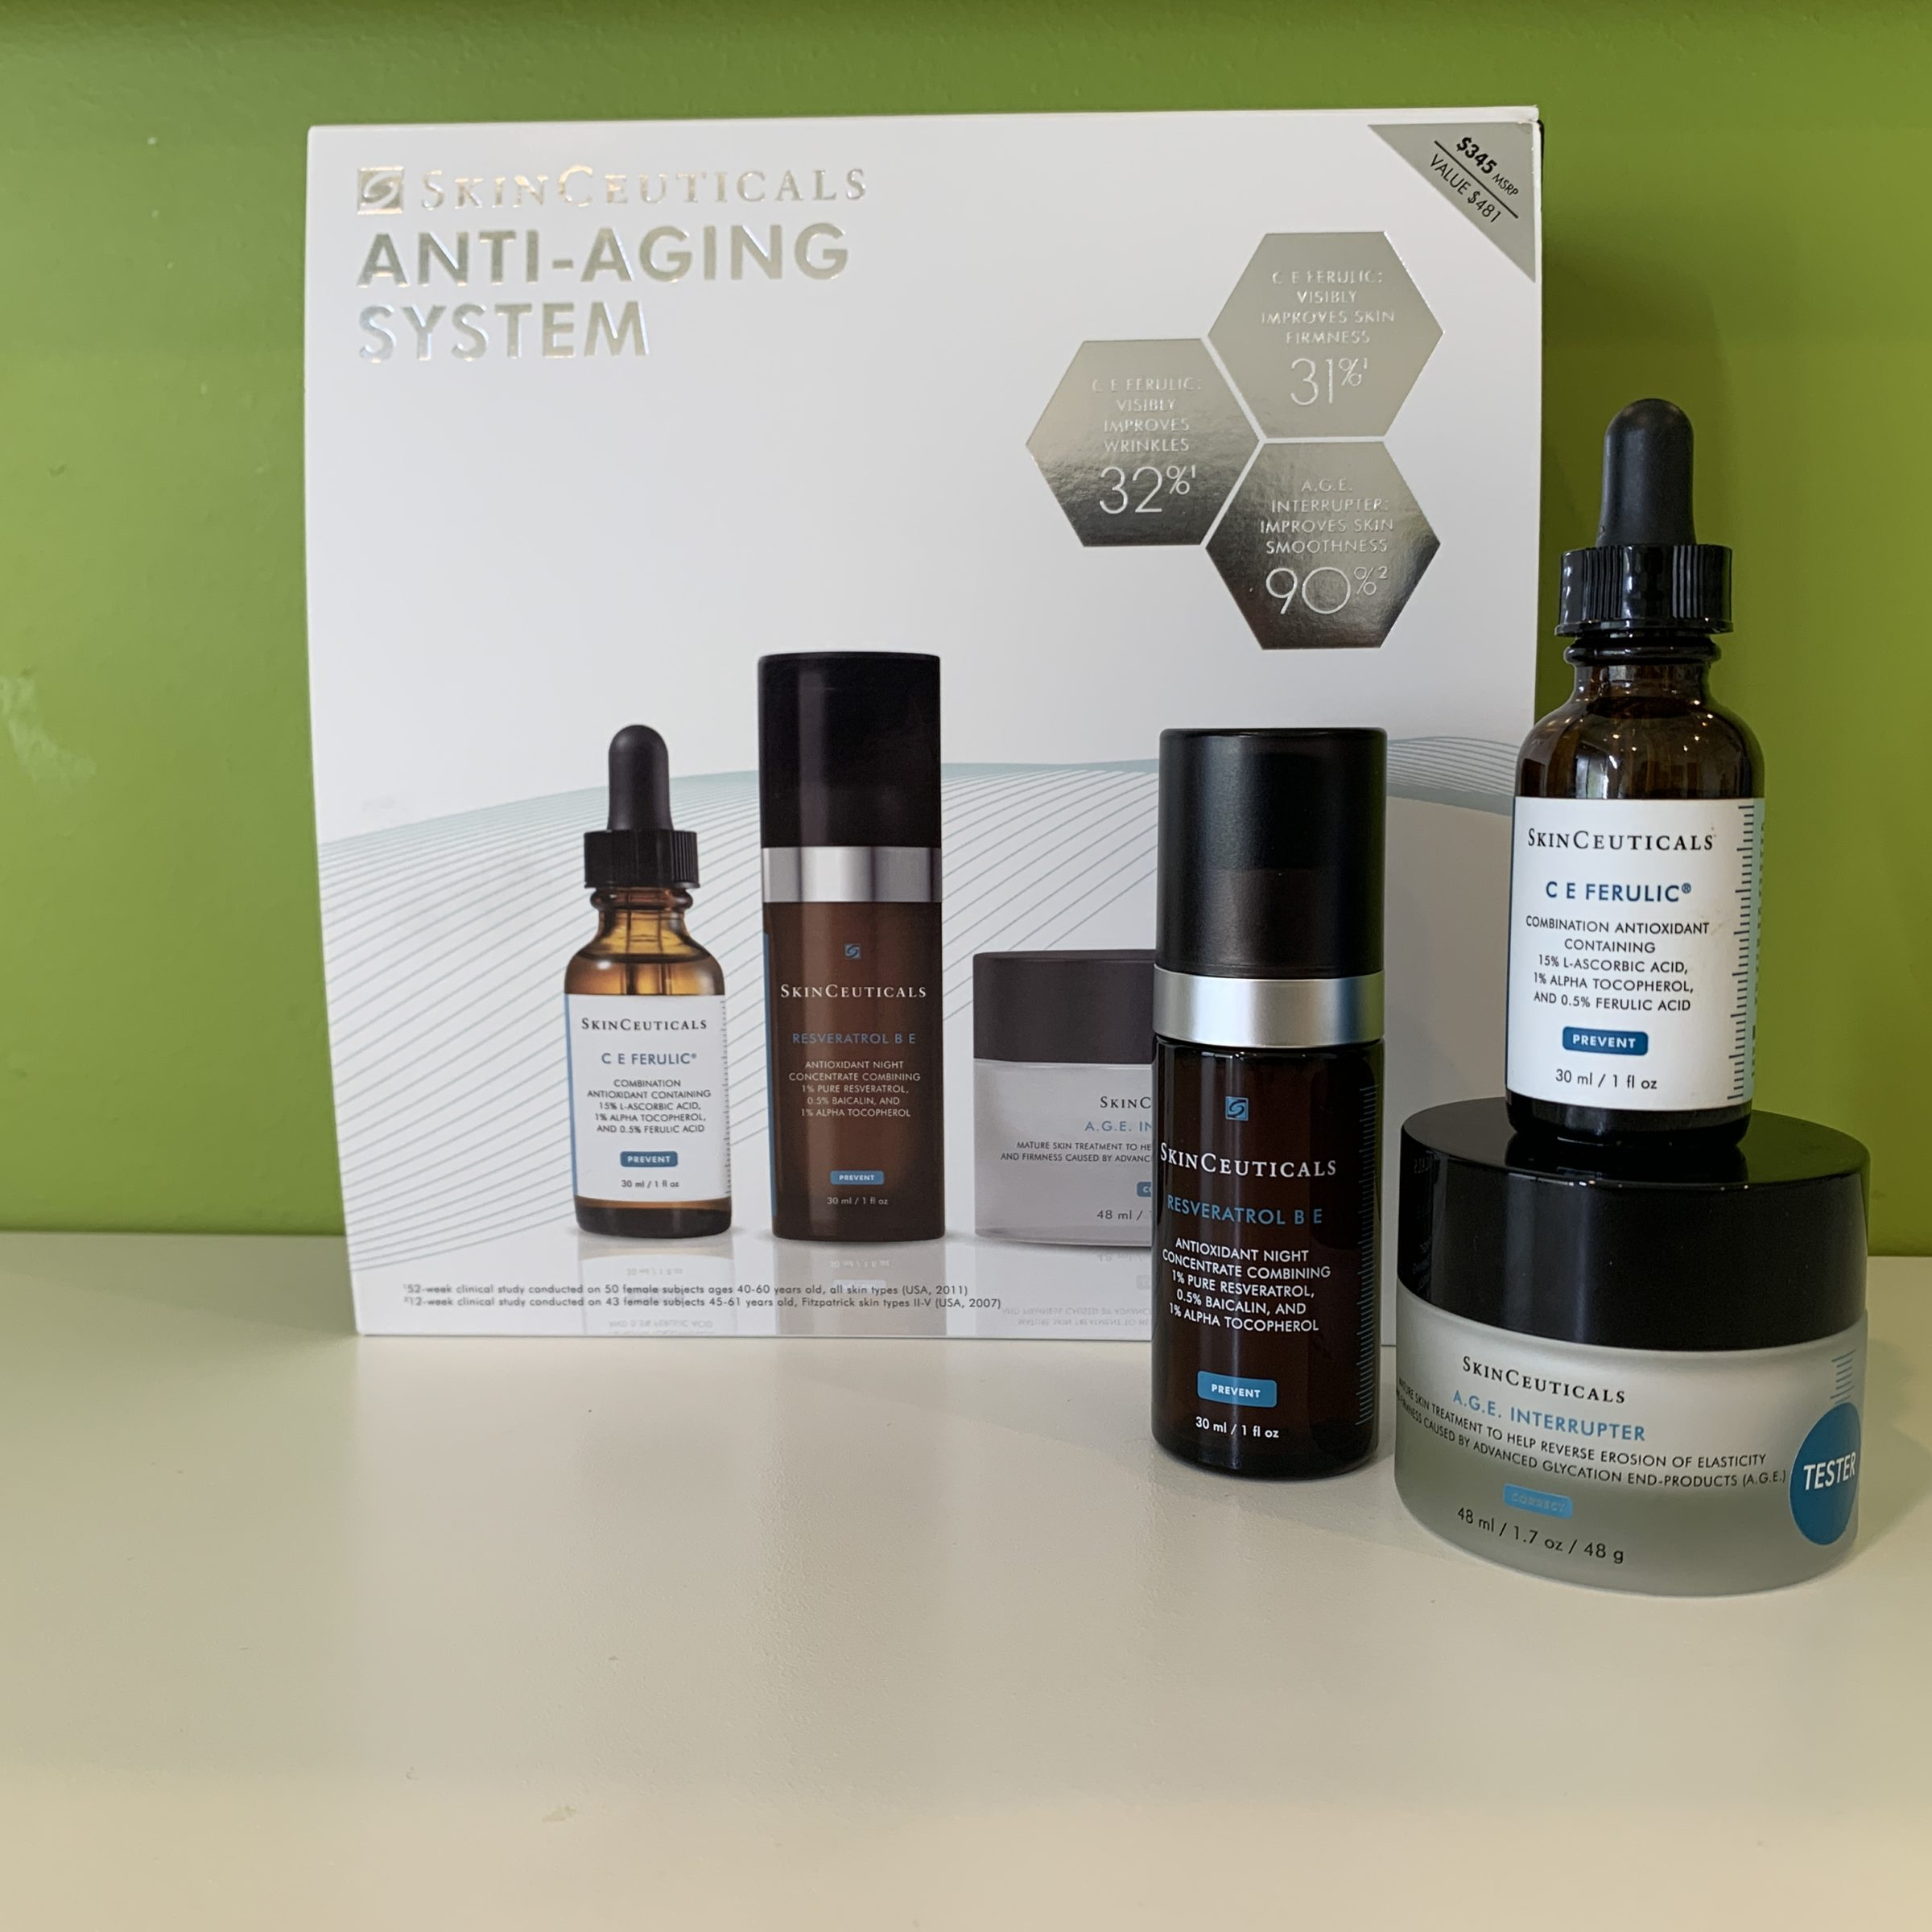 ANTI-AGING SKIN SYSTEM